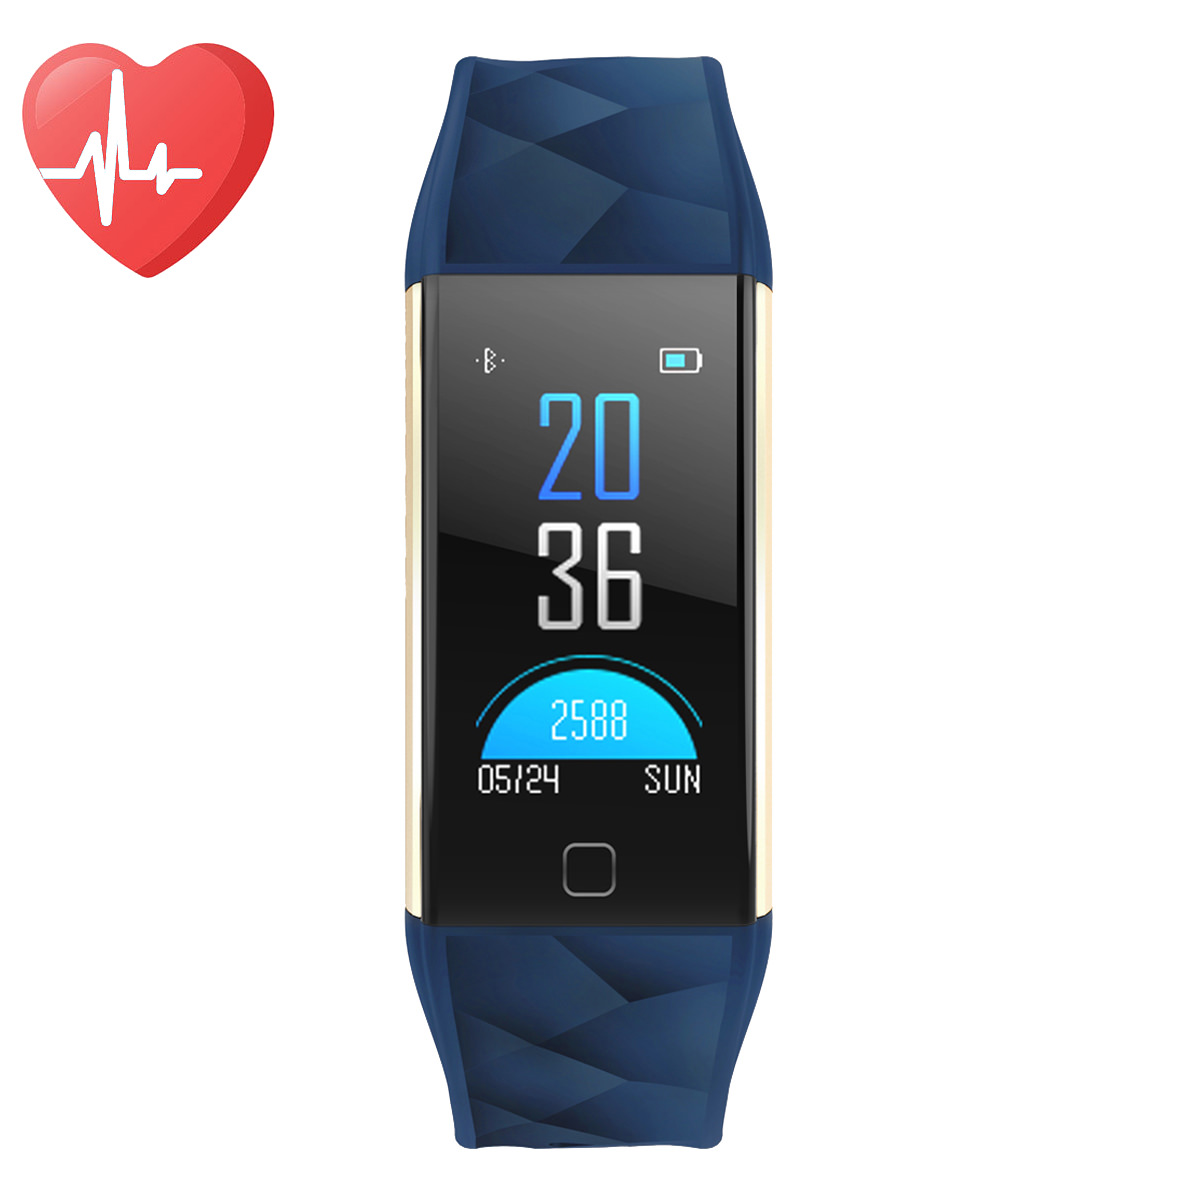 Diggro Smart Bracelet Wristband Watch Heart Rate Monitor Blood Pressure Fitness Tracker Blood Oxygen Monitor Fatigue Sleeping Monitor Call Message Reminder Remote Camera IP67 for Android IOS,Blue